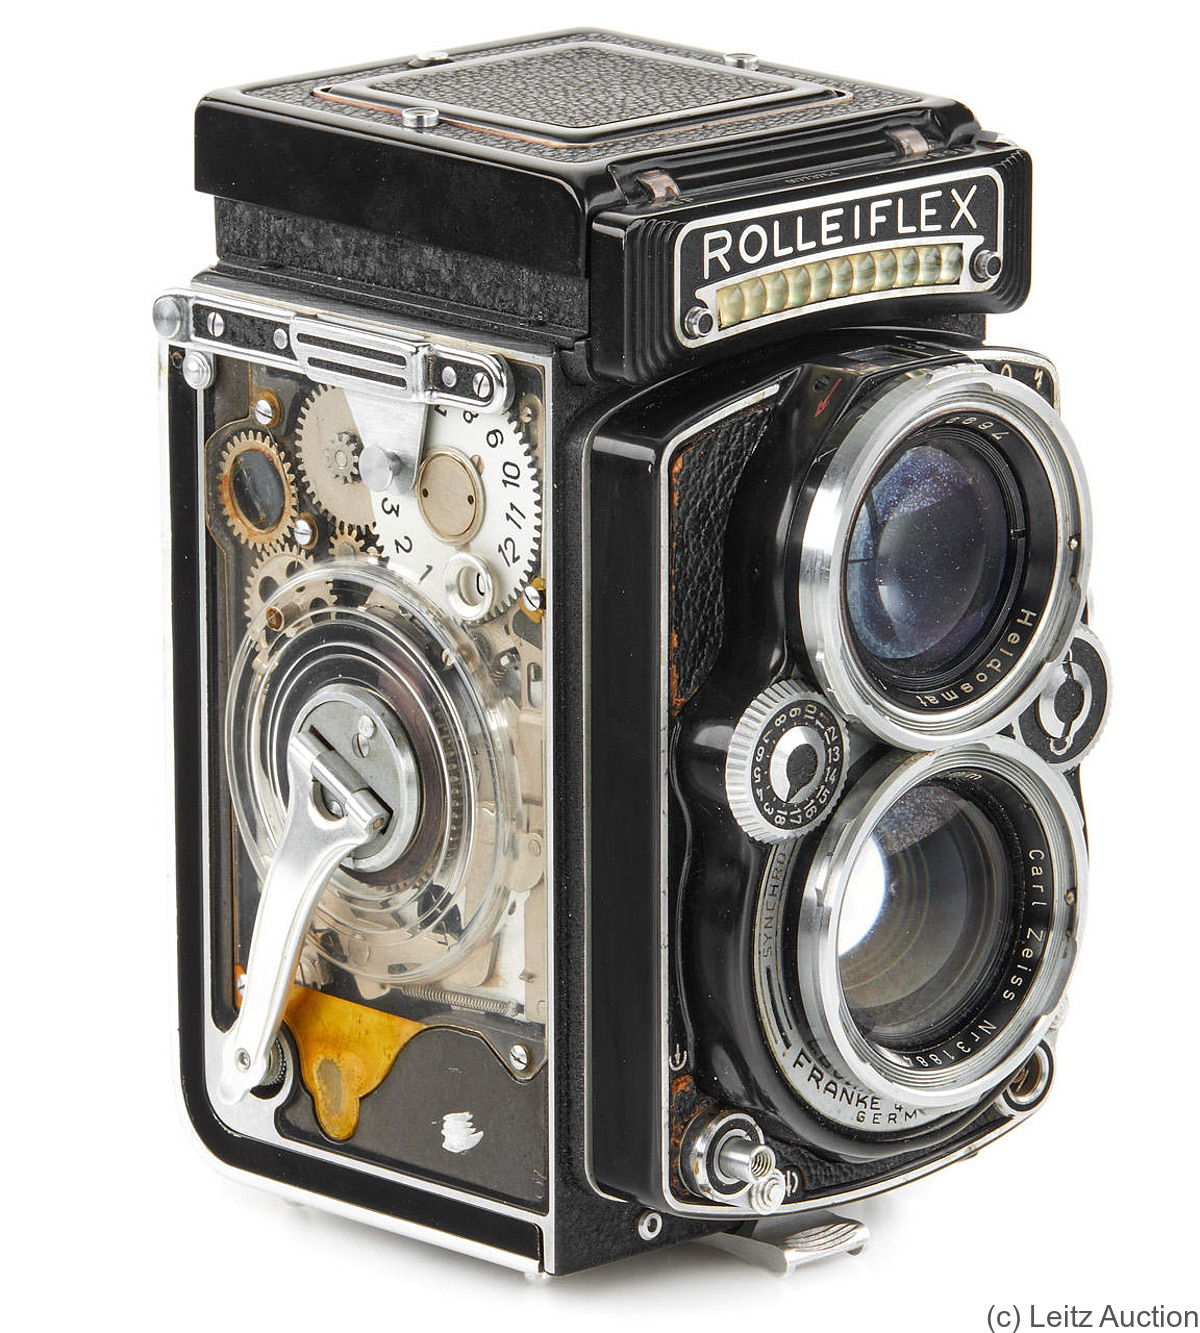 Rollei: Rolleiflex 2.8 Cut-Away camera